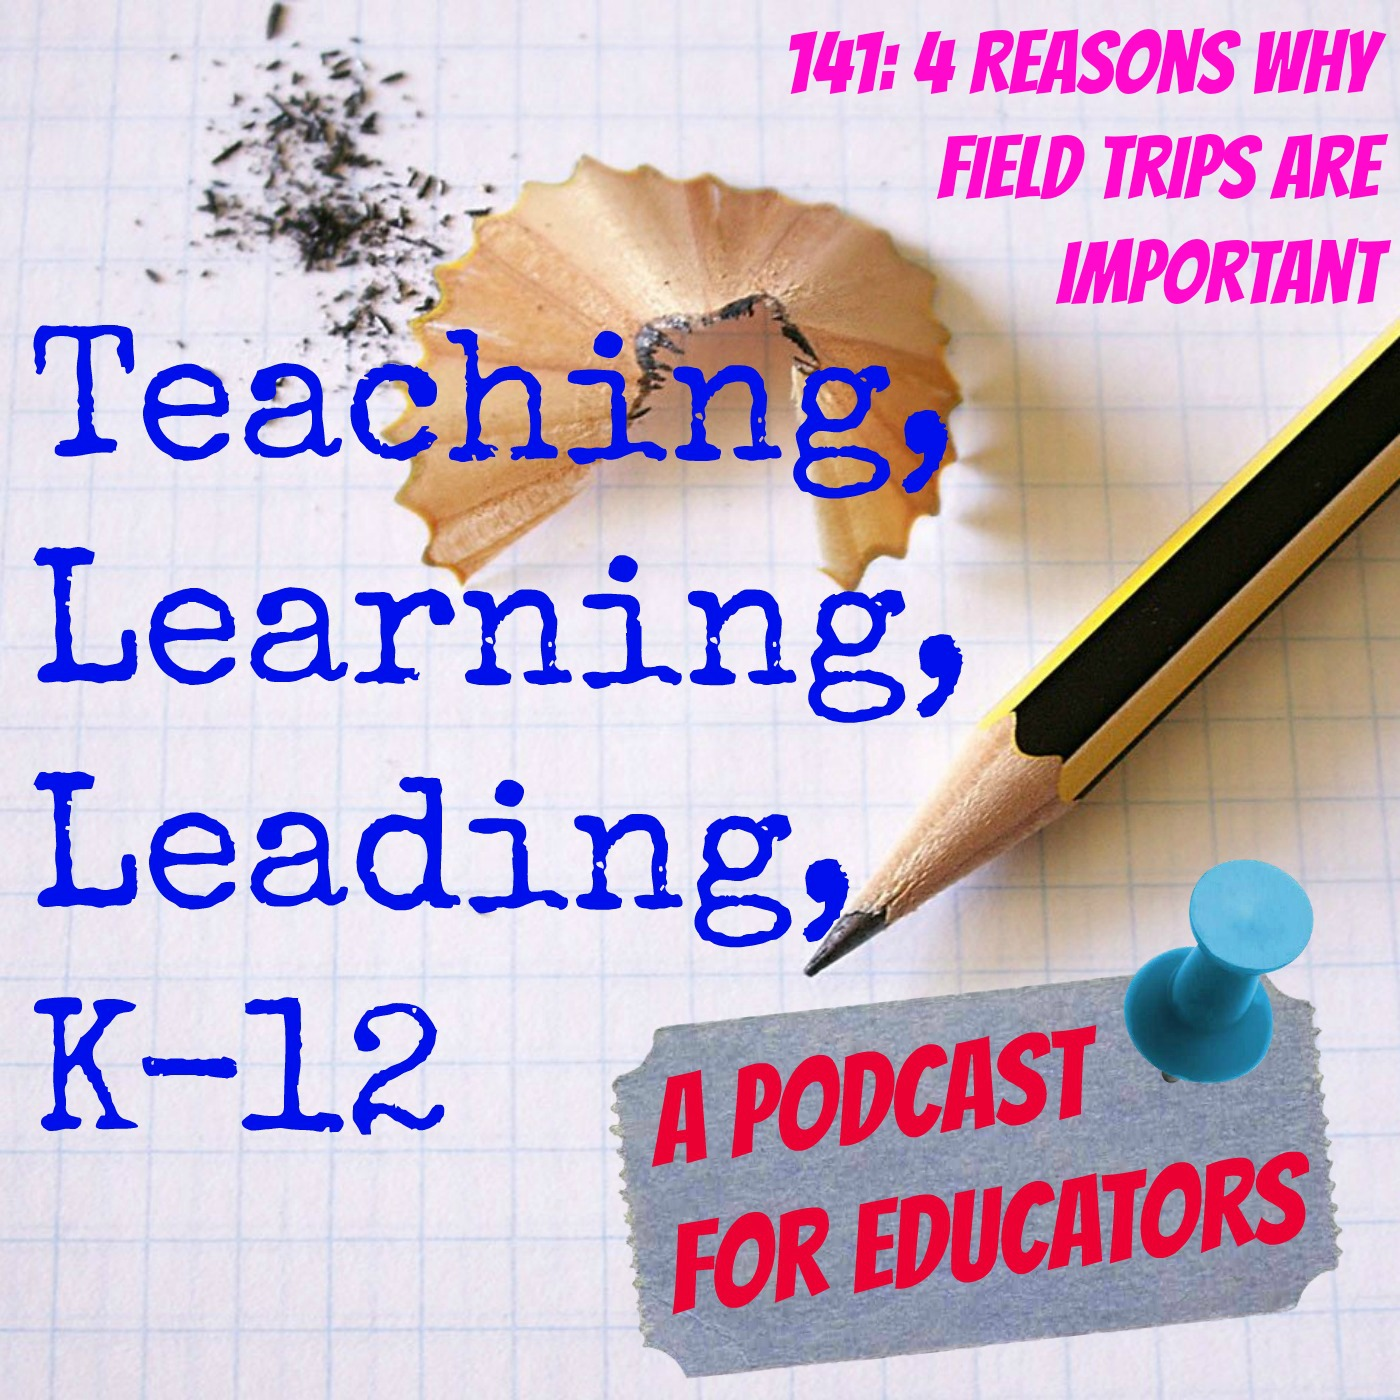 141: 4 Reasons Why Field Trips Are Important